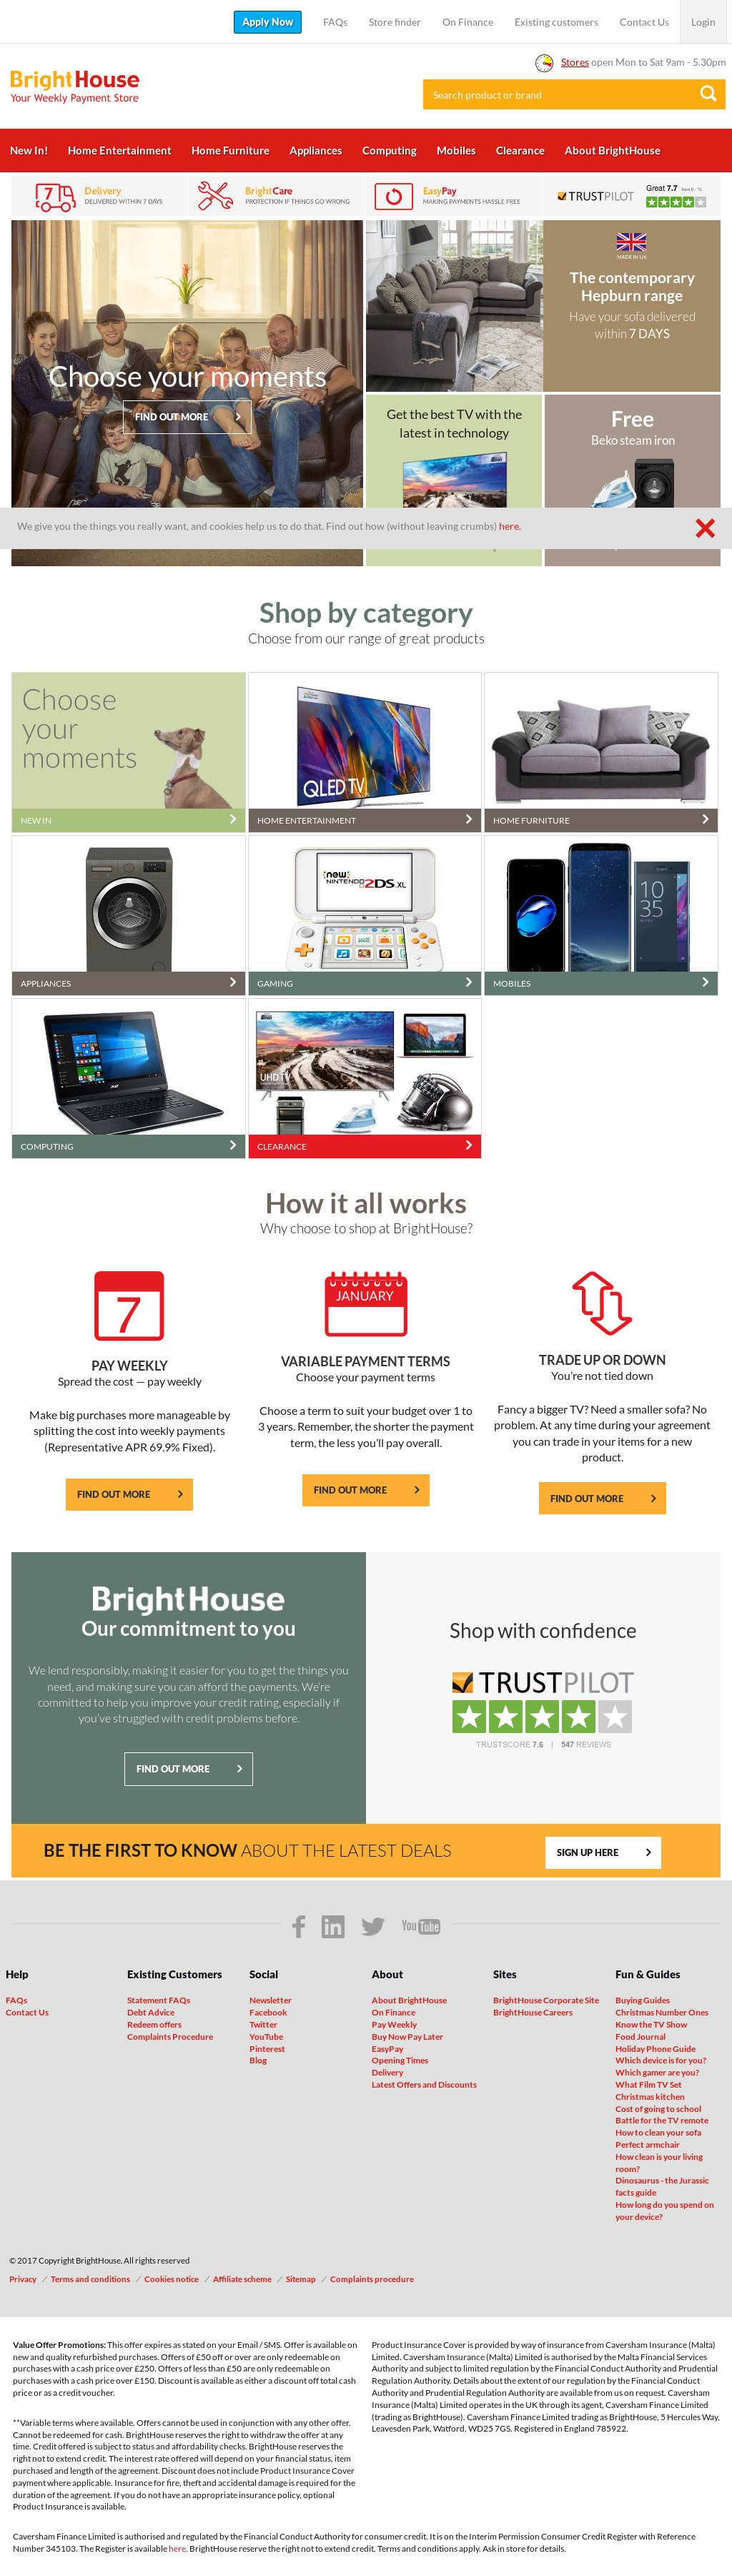 BrightHouse Competitors, Revenue and Employees - Owler